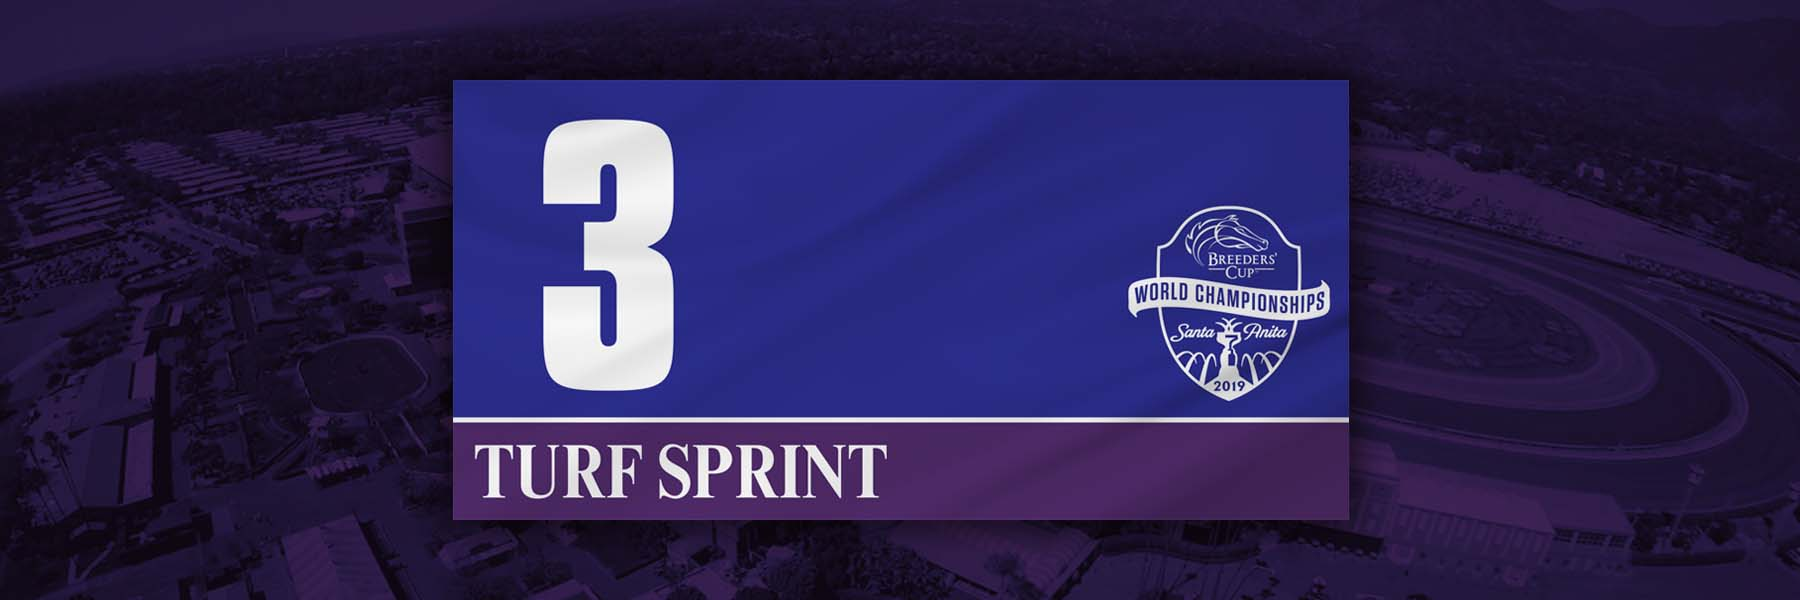 Breeders' Cup Turf Sprint Analysis and Betting Strategies for November 2nd, 2019